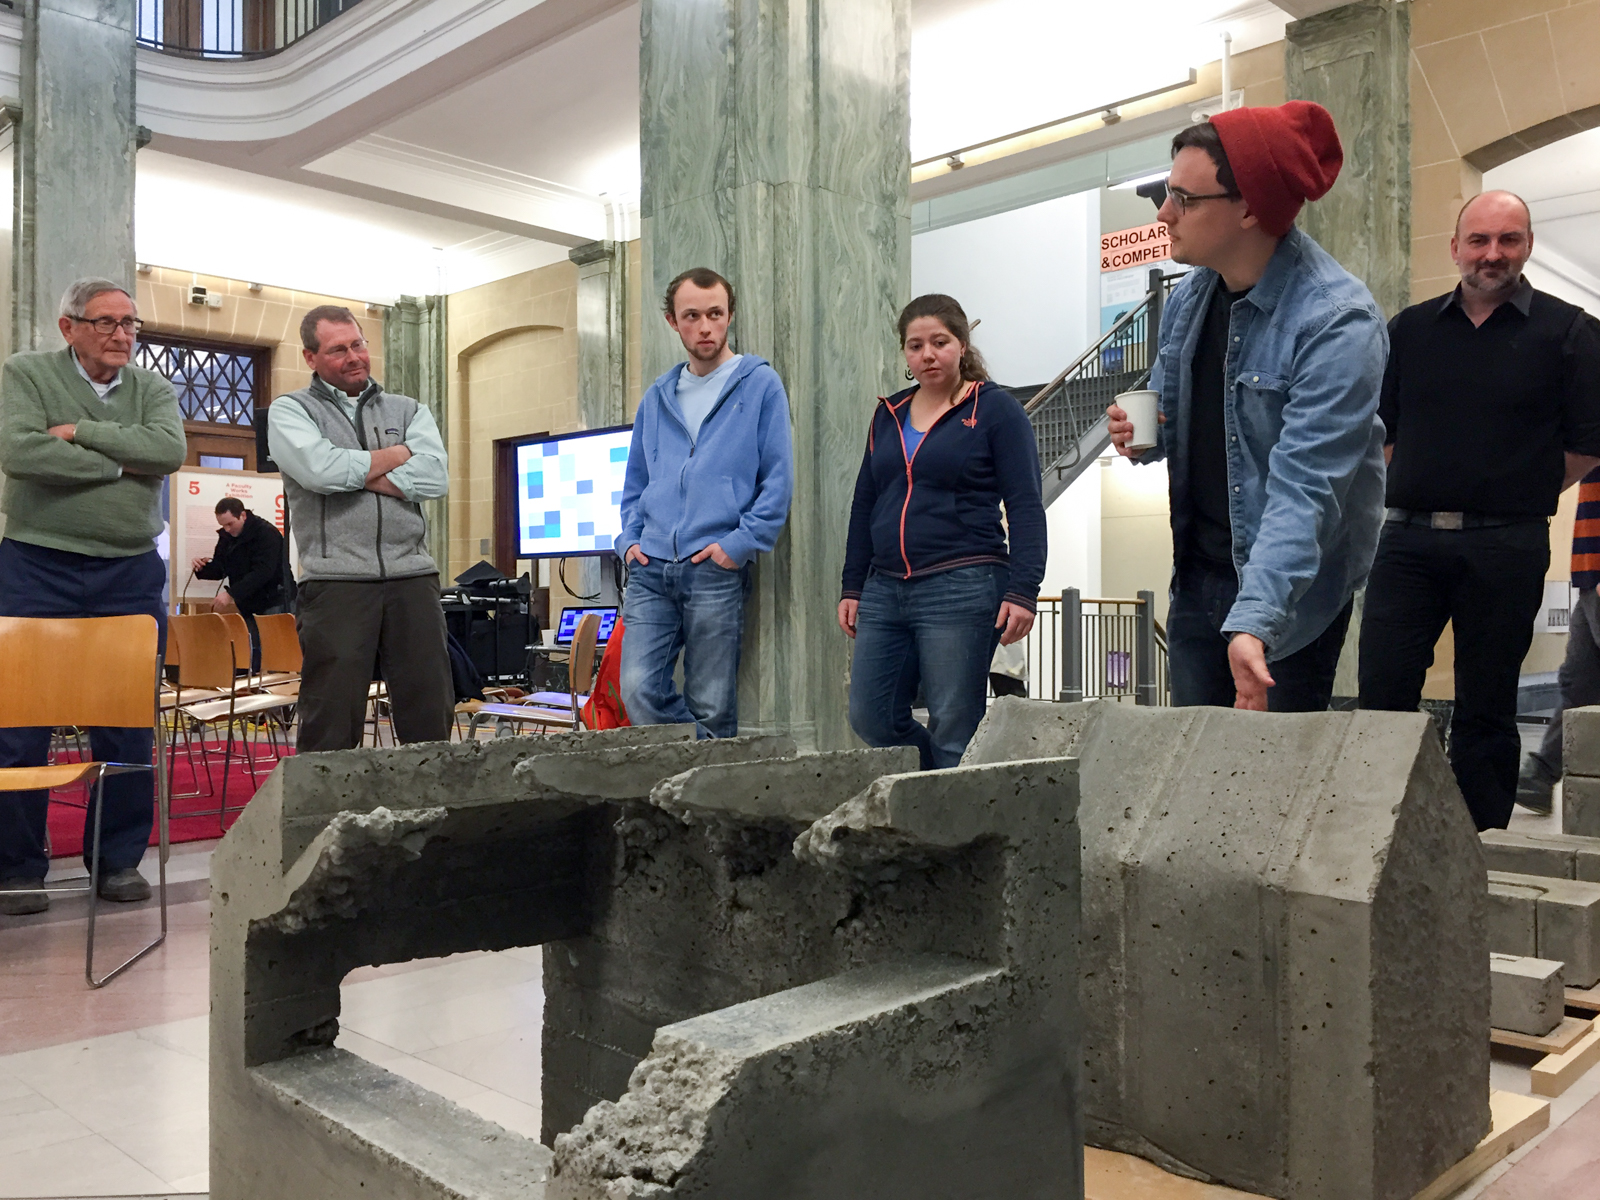 Deans list michael speaks of syracuse architecture features